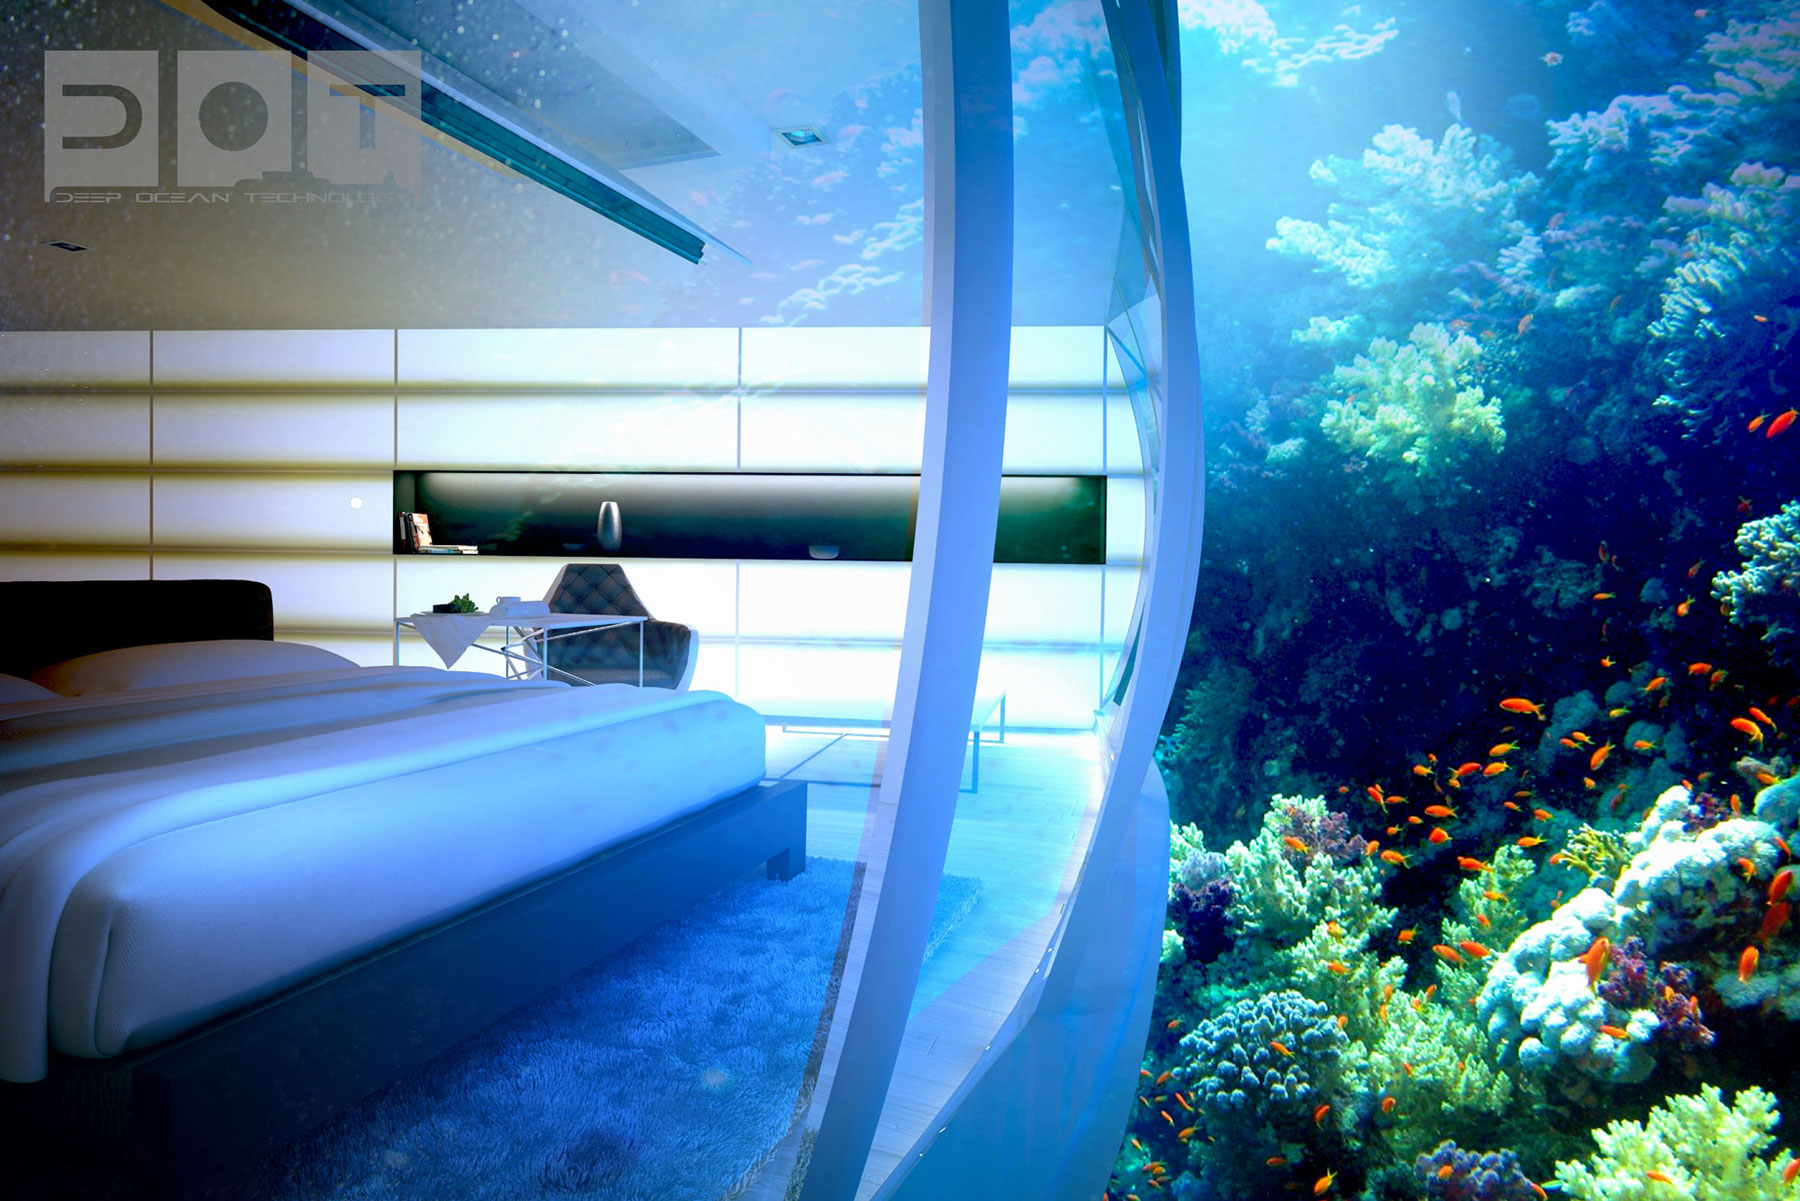 The Water Discus Underwater Hotel planned for Dubai (11)